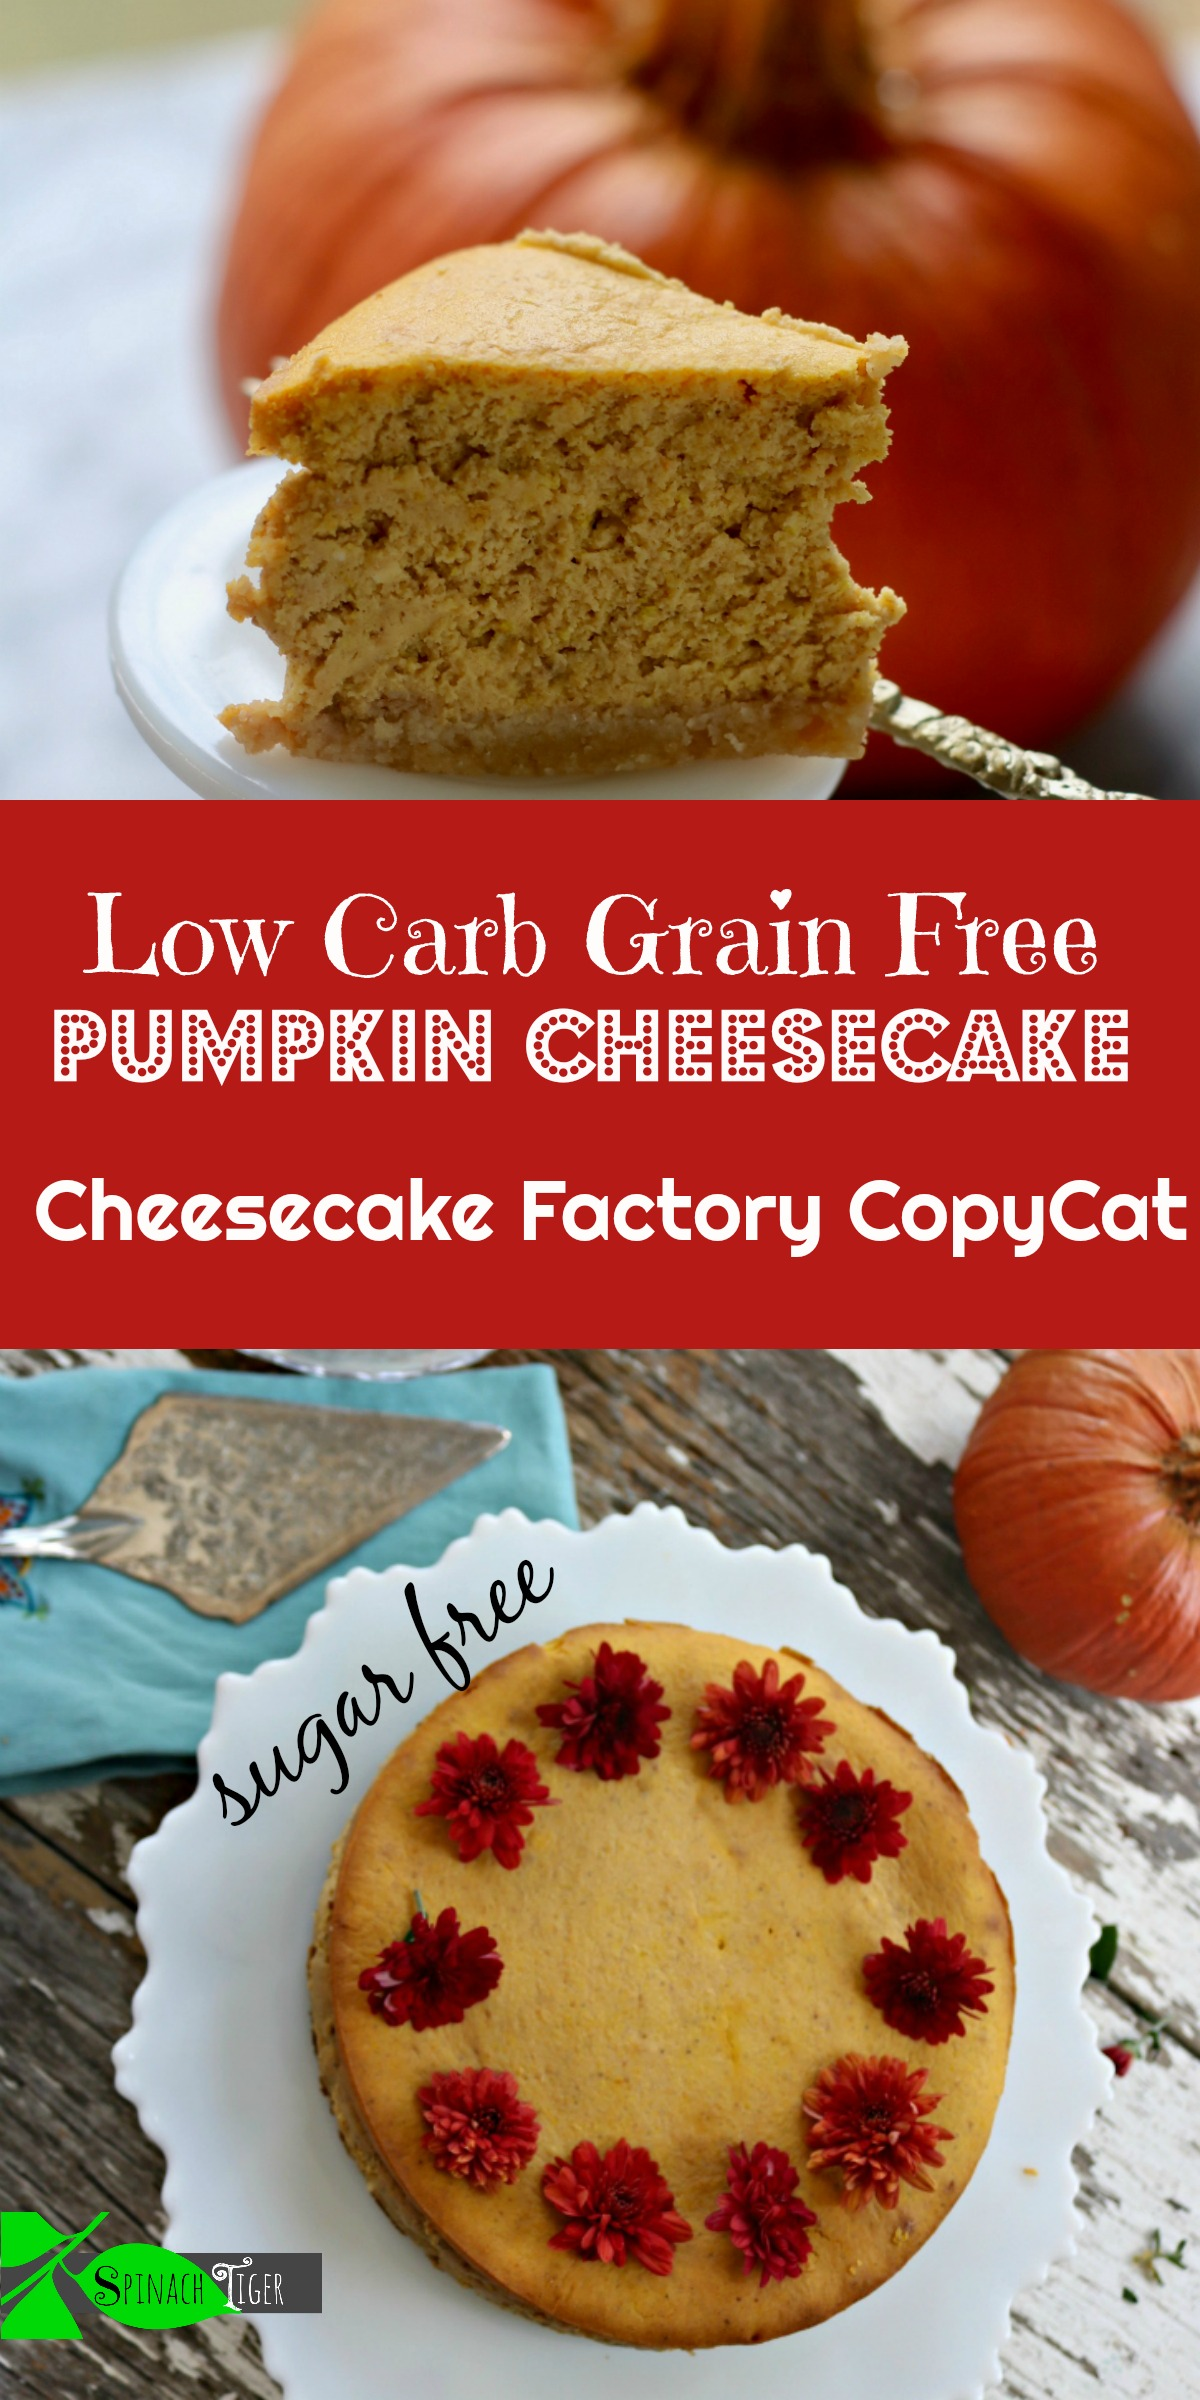 Low Carb, Keto Friendly Pumpkin Cheesecake from Spinach TIger. #ketopumpkincheesecake #lowcarbpumpkincheesecake via @angelaroberts